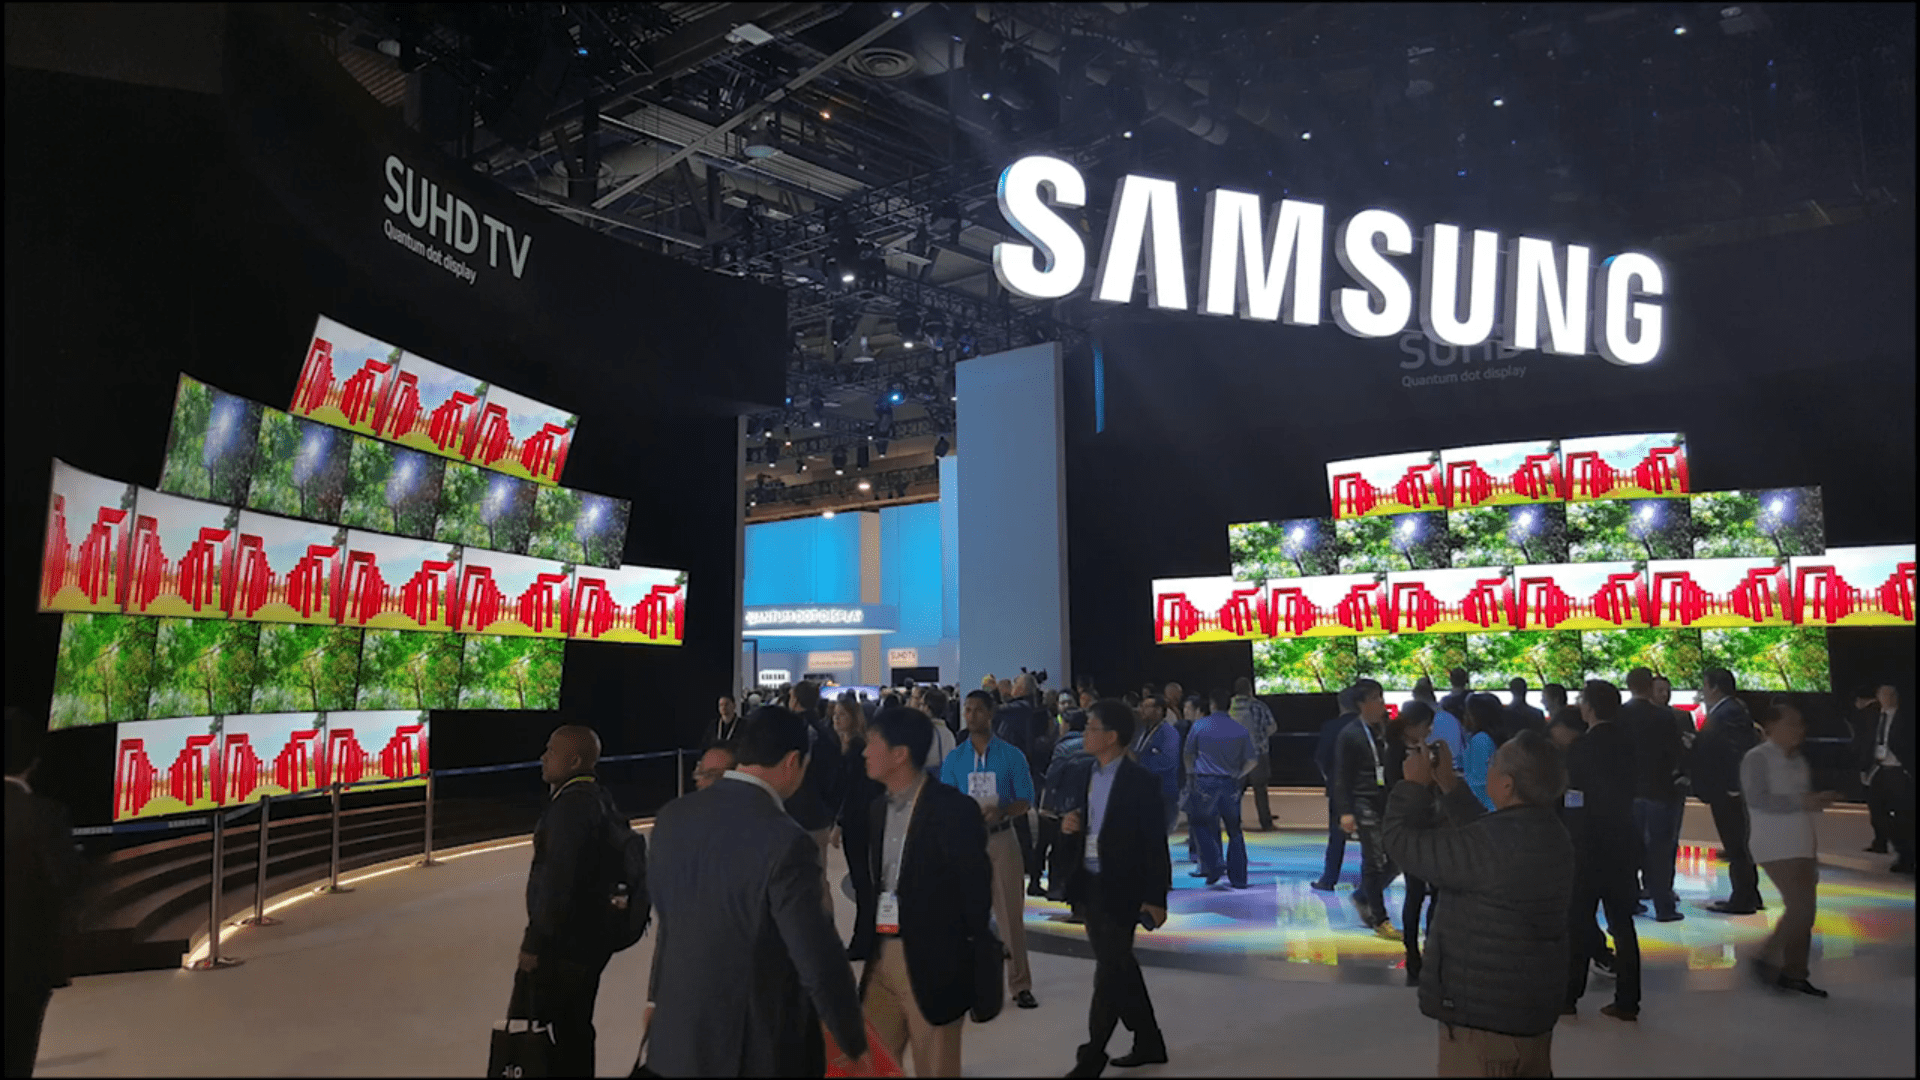 Samsung-CES-2016-Timelapse-on-Vimeo.png